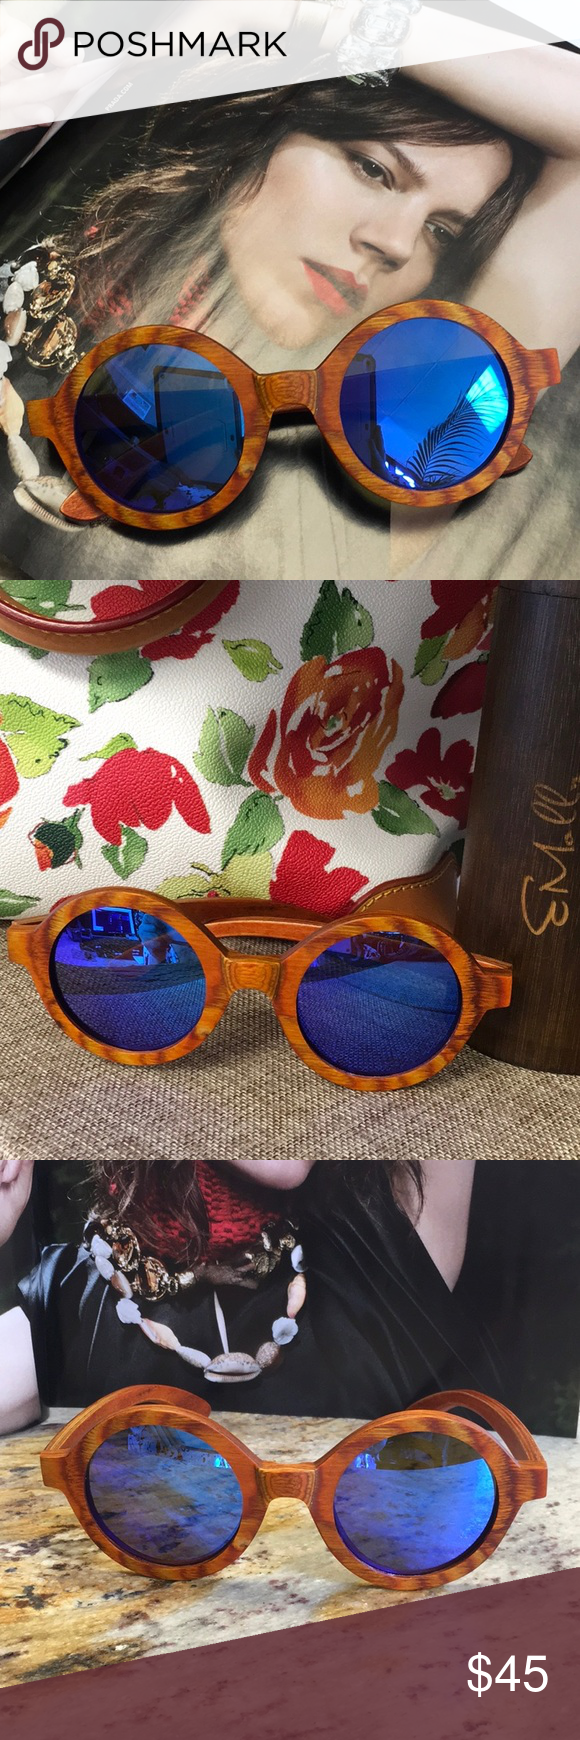 Emolly bamboo sunglasses Vintage style peacock frame in